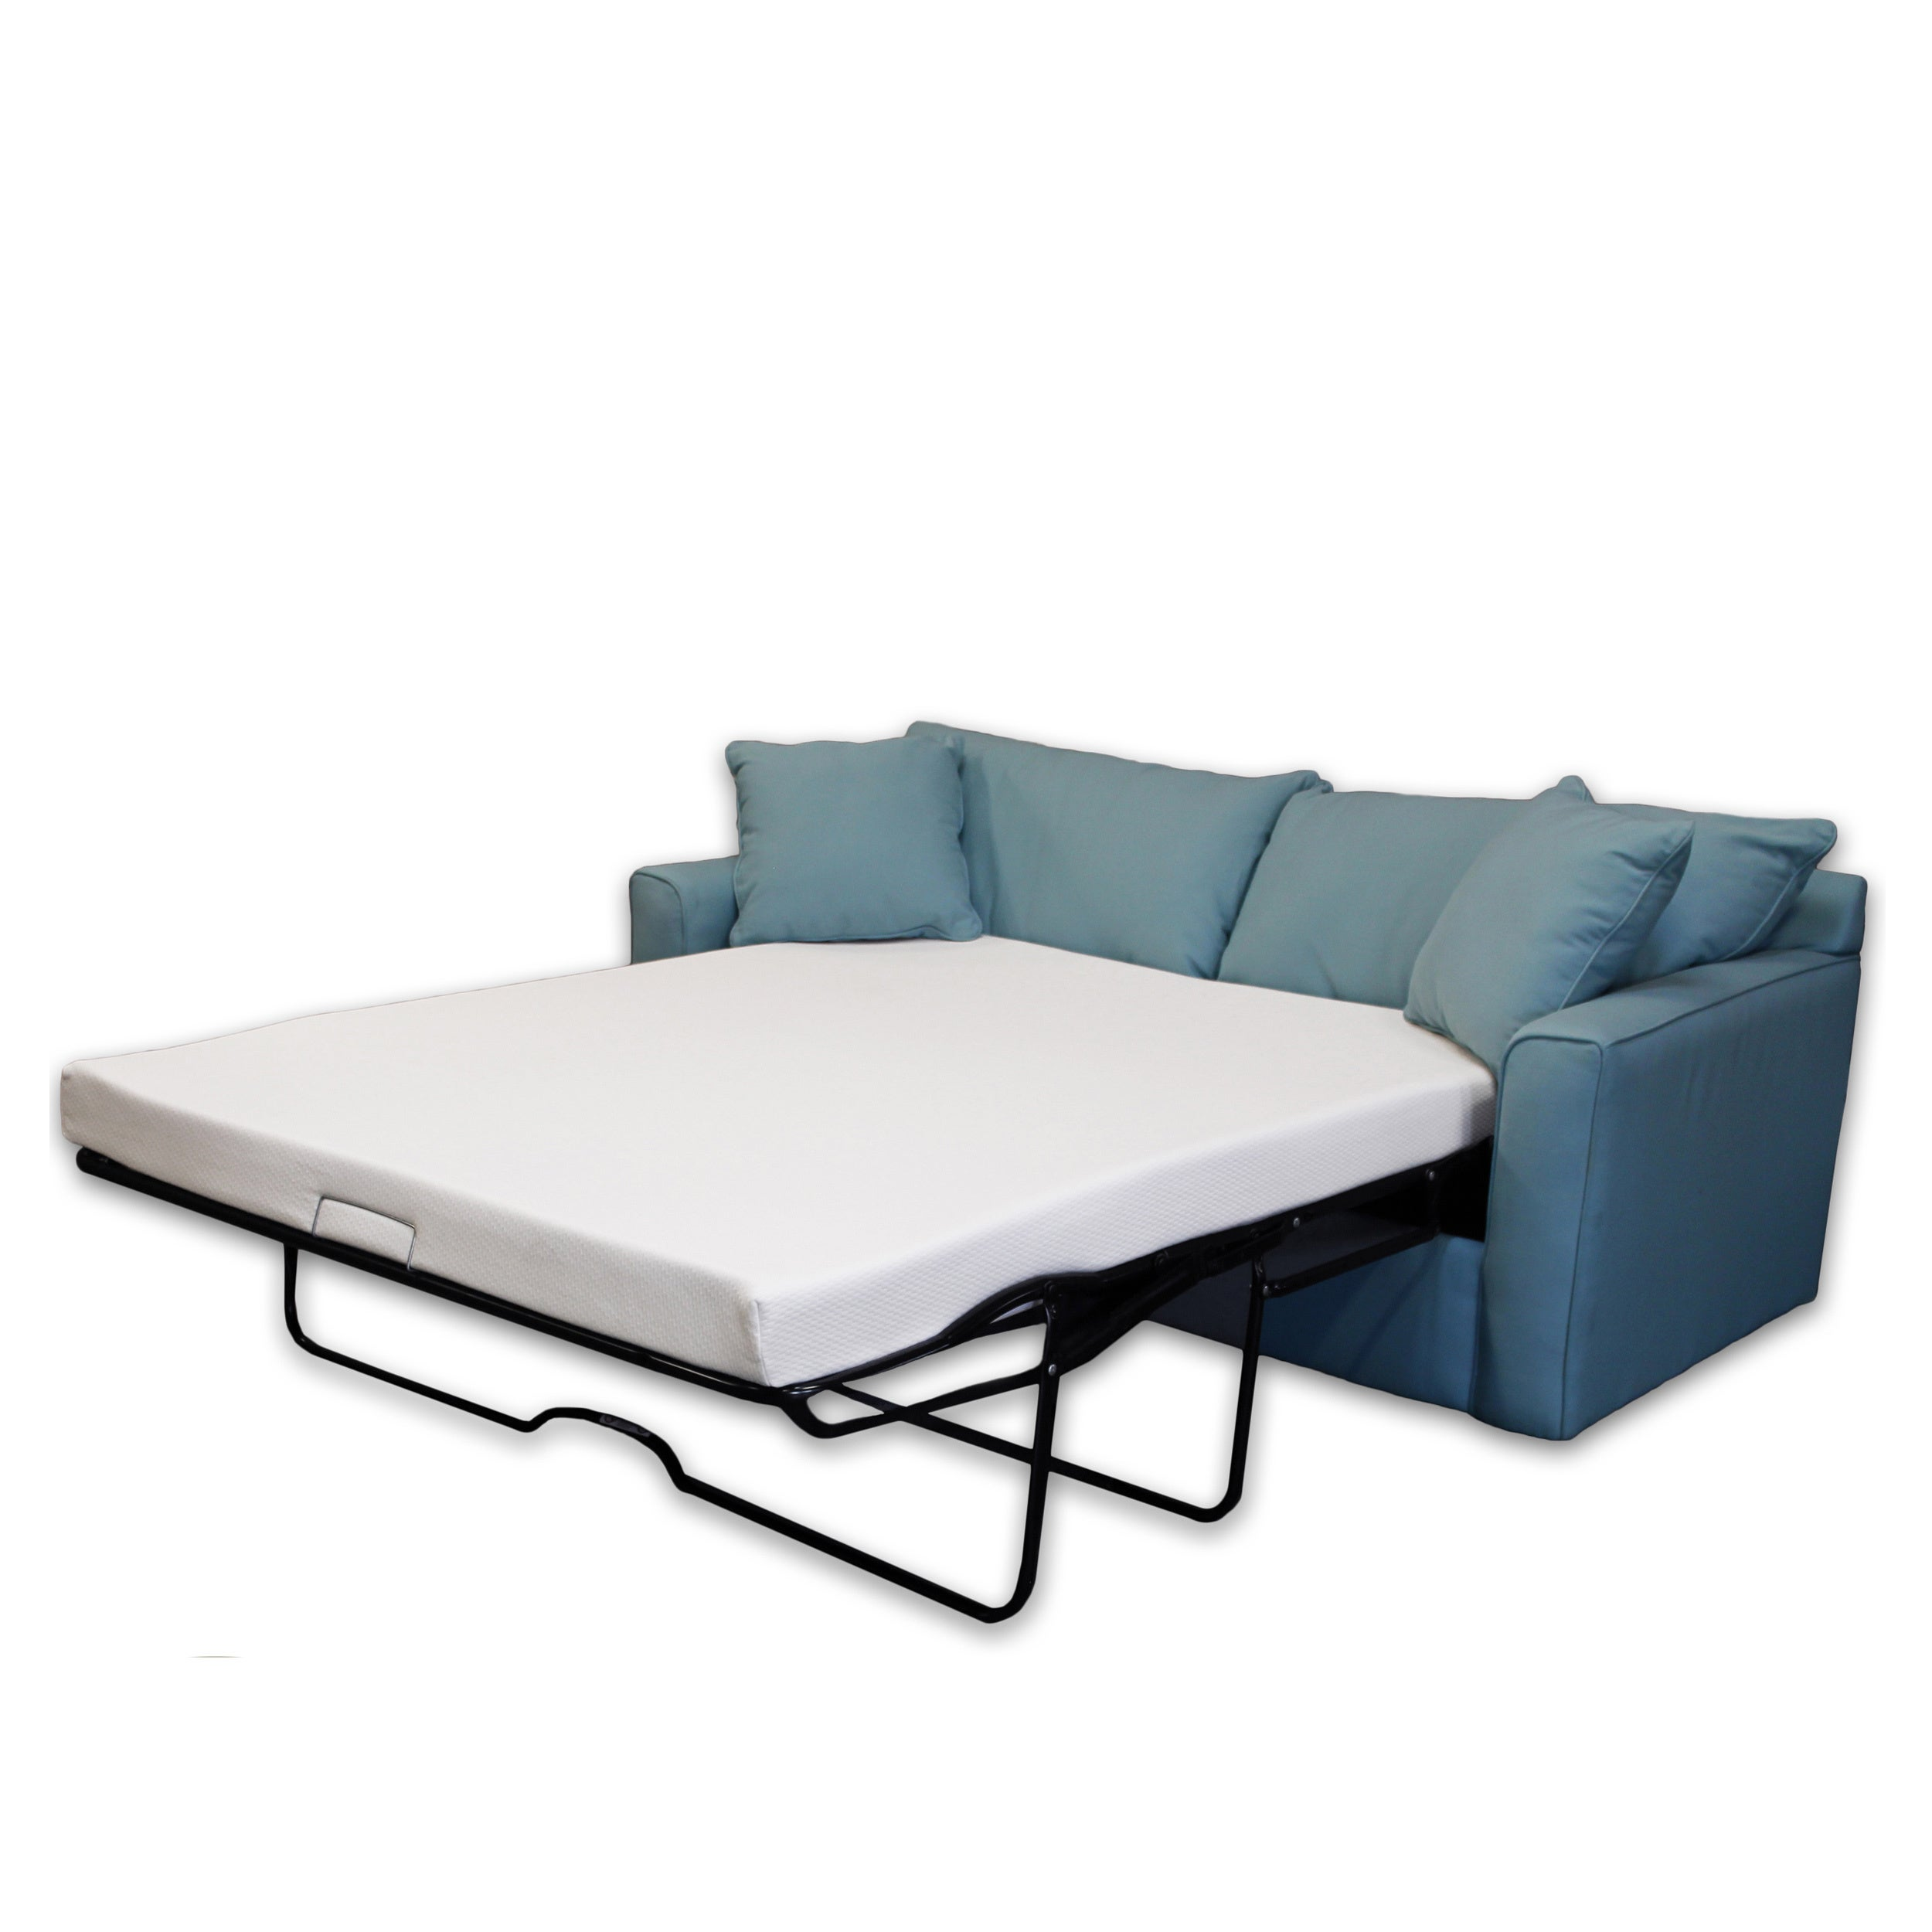 Select Luxury New Life 4 5 Inch Full Size Memory Foam Sofa Bed Sleeper Mattress Only Free Shipping Today 11163167